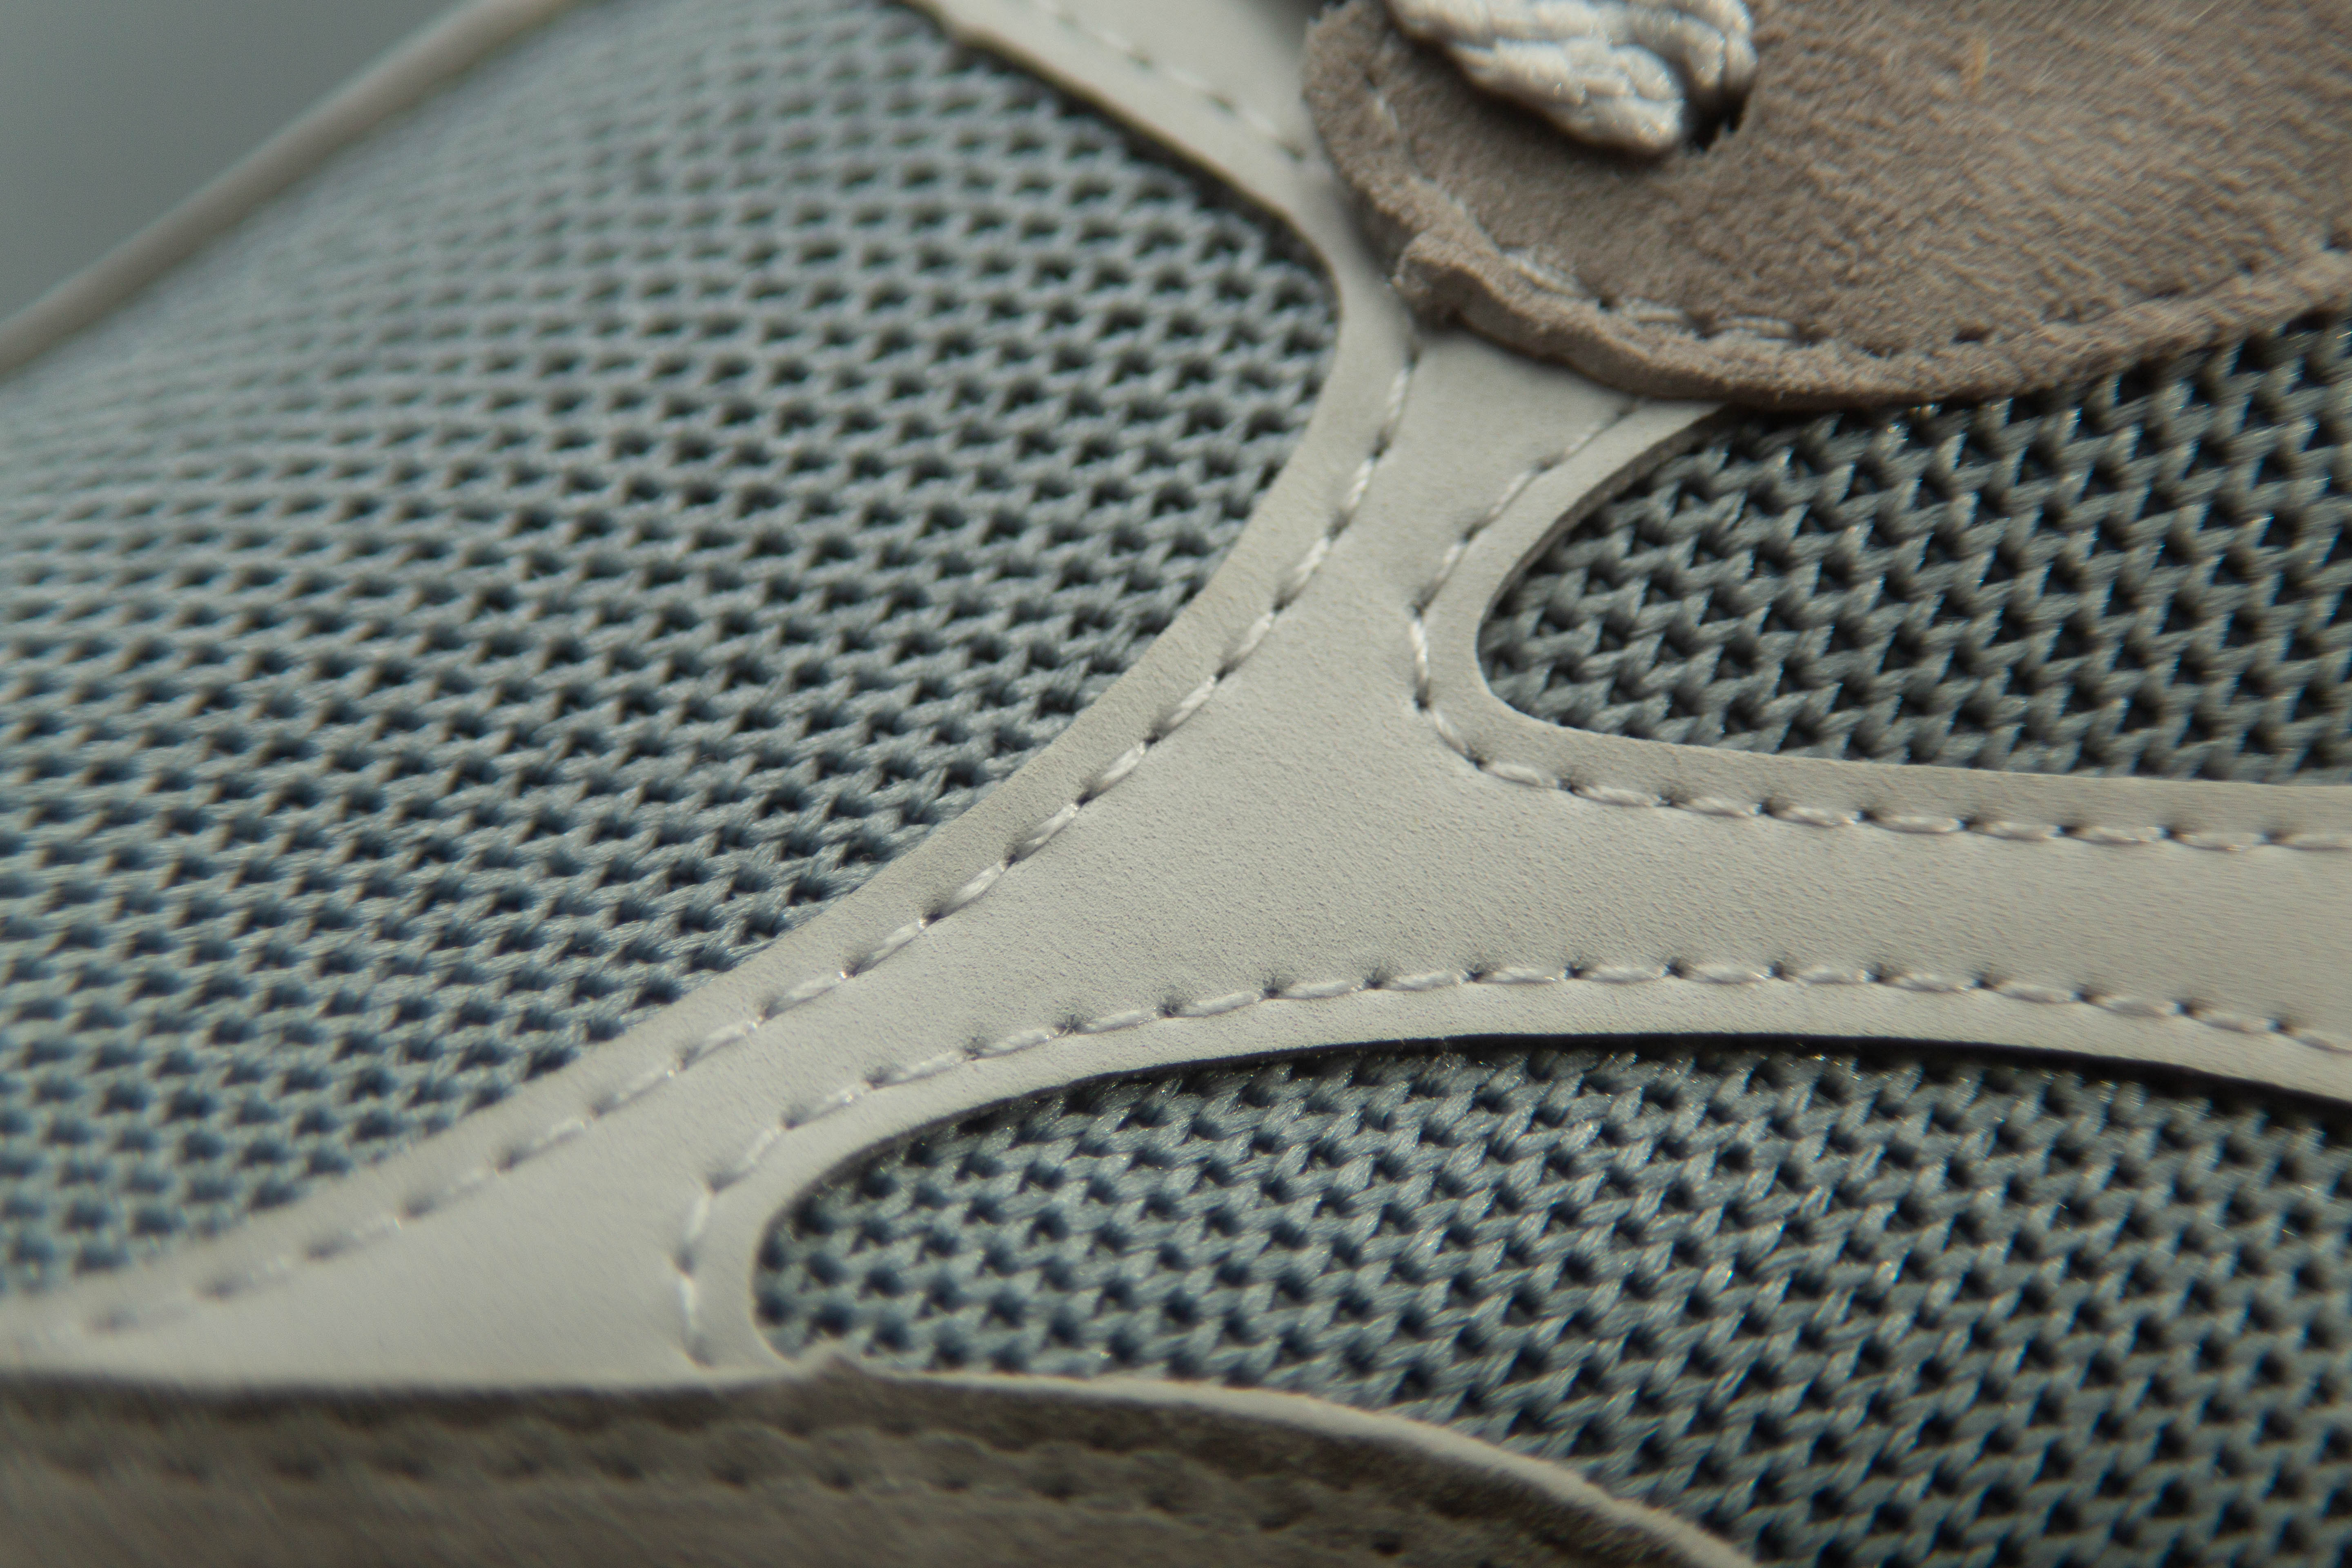 An Overlay Panel on the New Balance X-90 Reconstructed